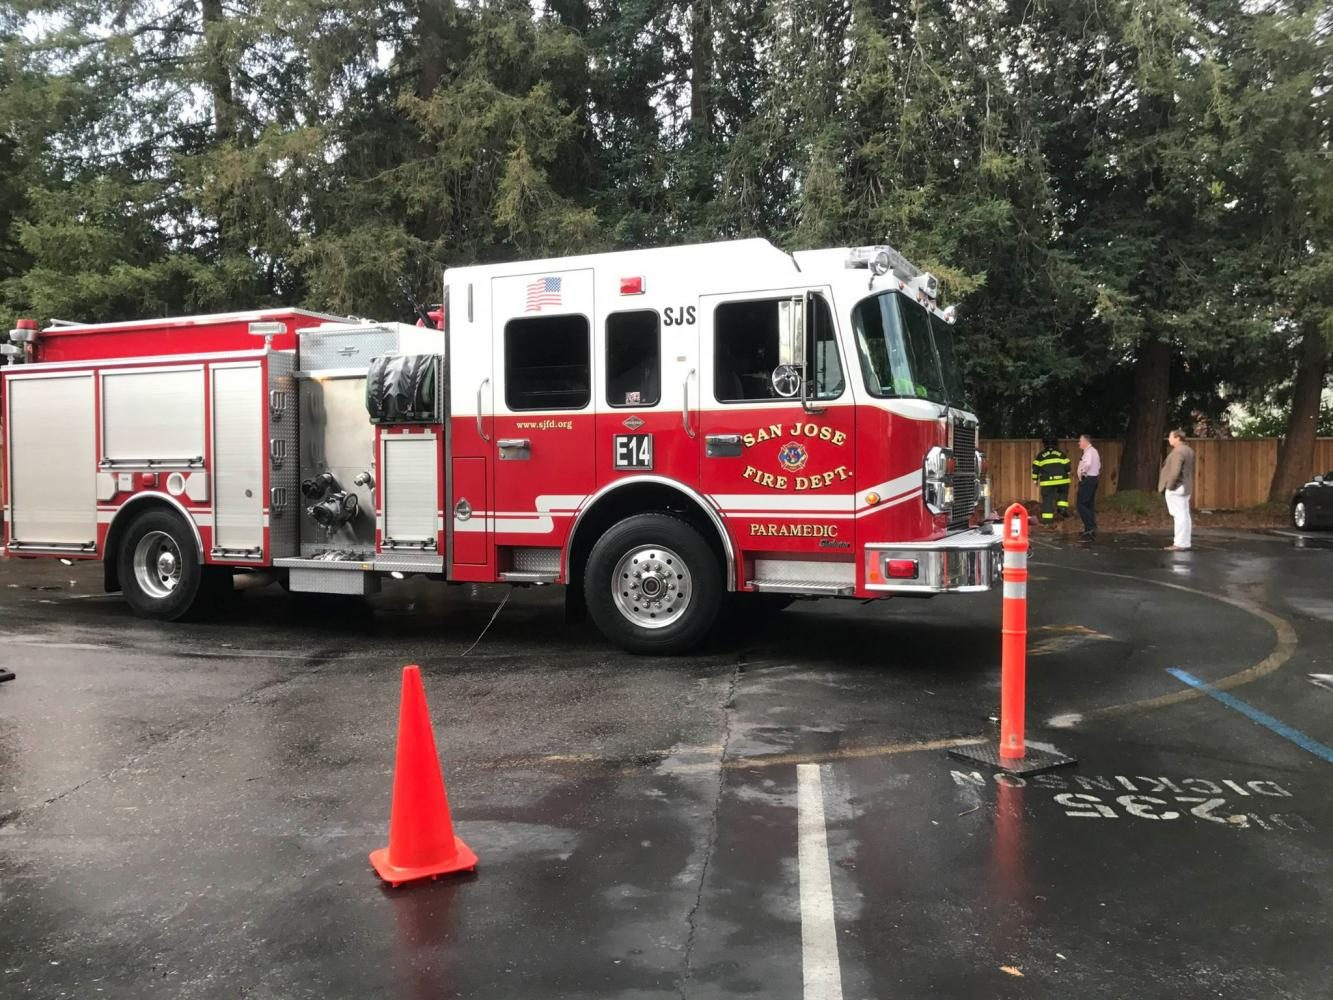 A San Jose Fire Department truck arrives at the scene of the lightning strike. By the time the firefighters arrived, the trees fire had already gone out.